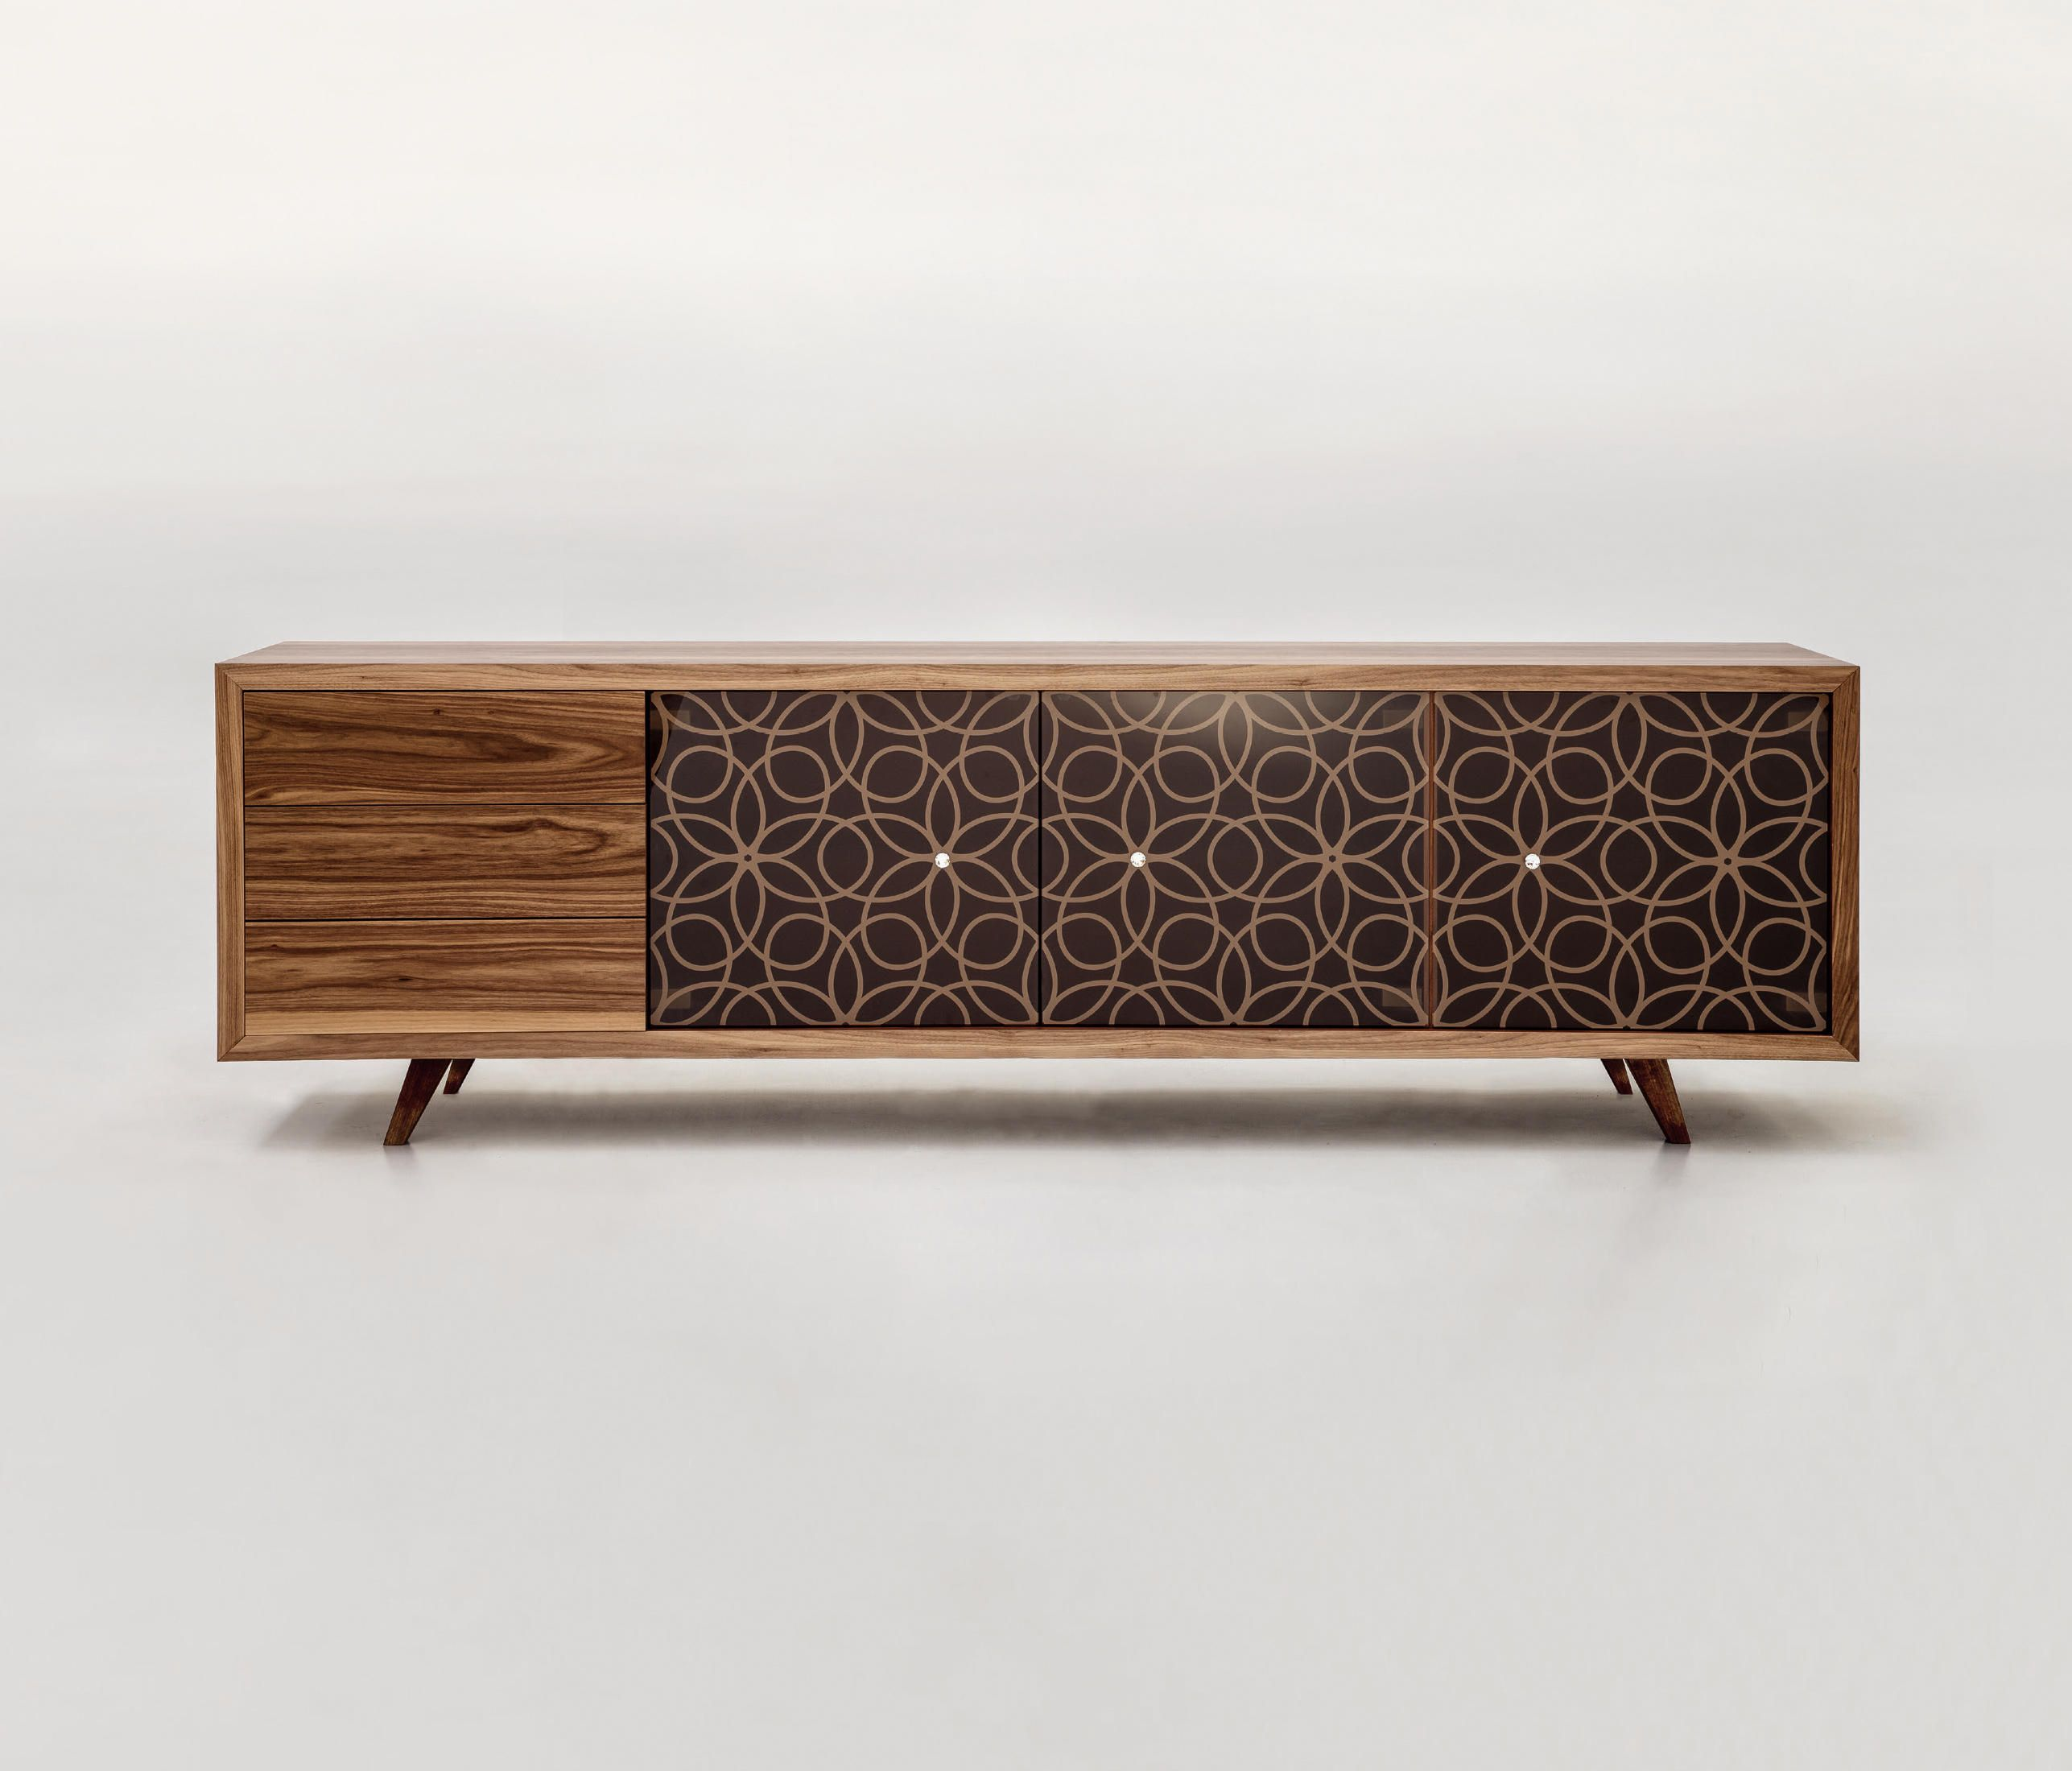 Granada Designer Sideboards From Tonin Casa All Information High Resolution Images Cads Catalogues Conta Interior Furniture Sideboard Designs Decor